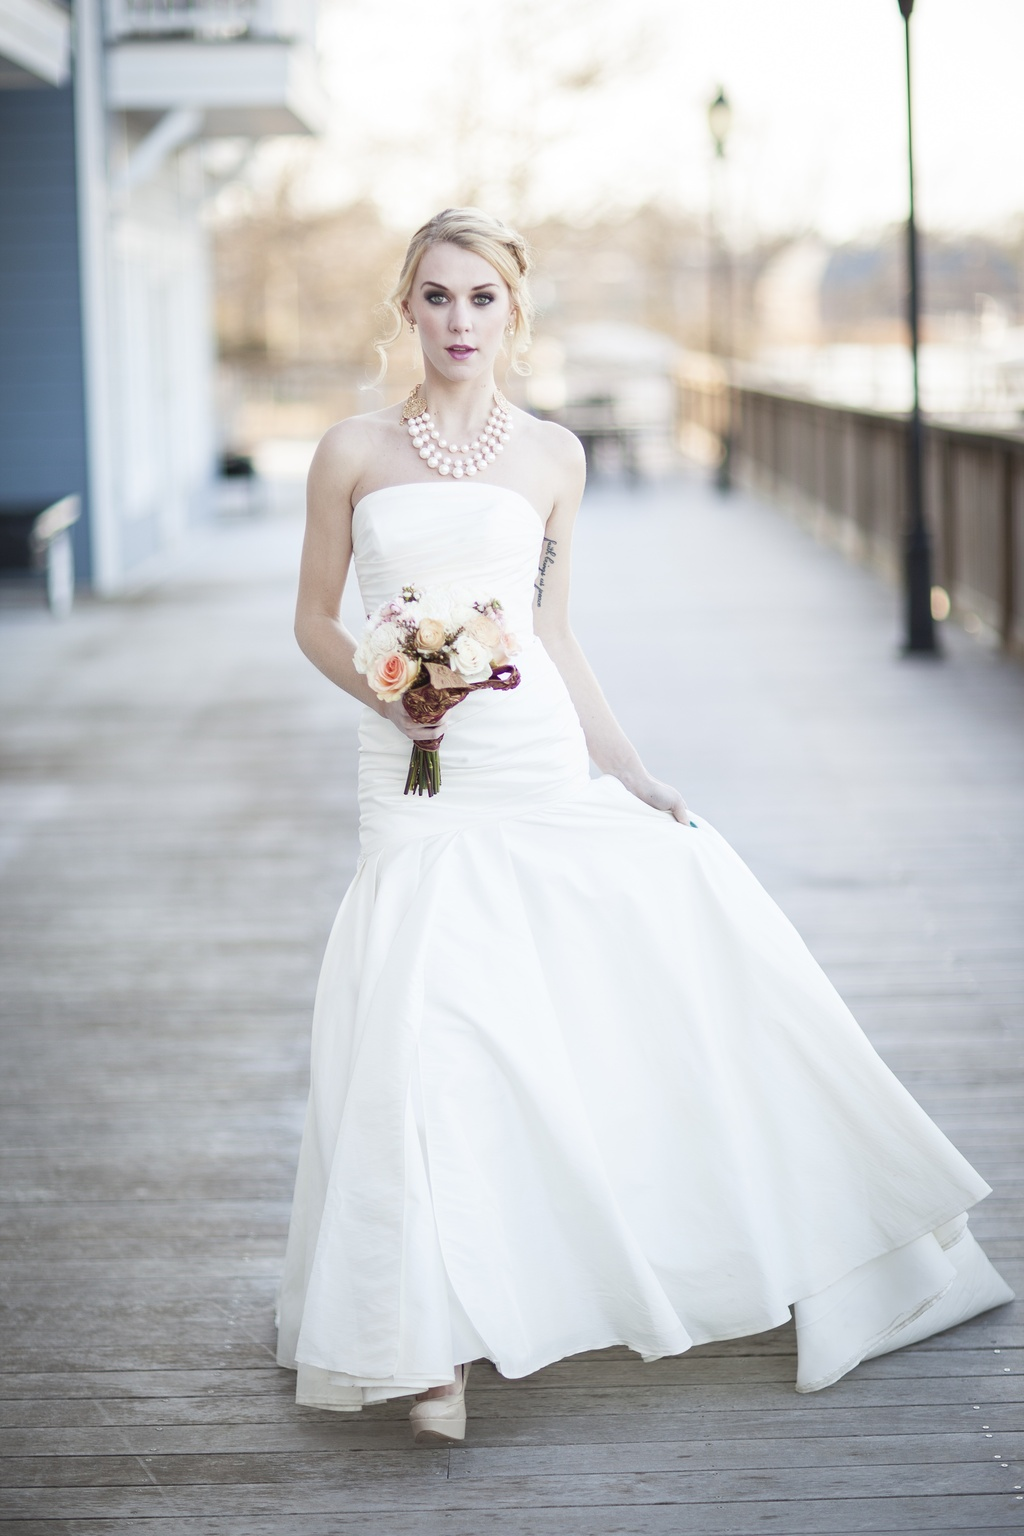 Bride-wears-white-strapless-mermaid-wedding-dress-with-statement-necklace.full